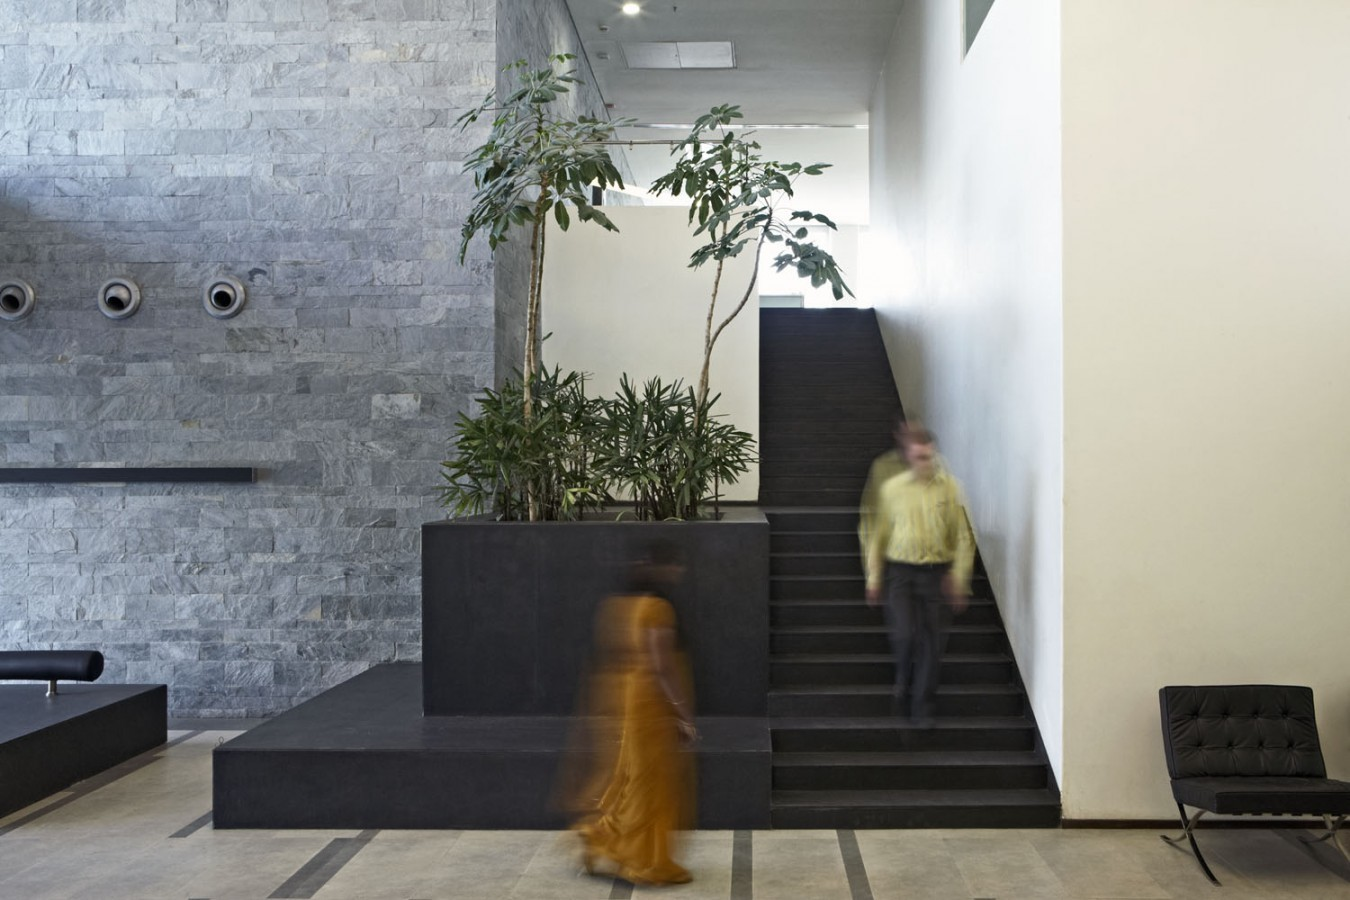 KMC Corporate Office by Rahul Mehrotra: Modulation of light and air - Sheet5